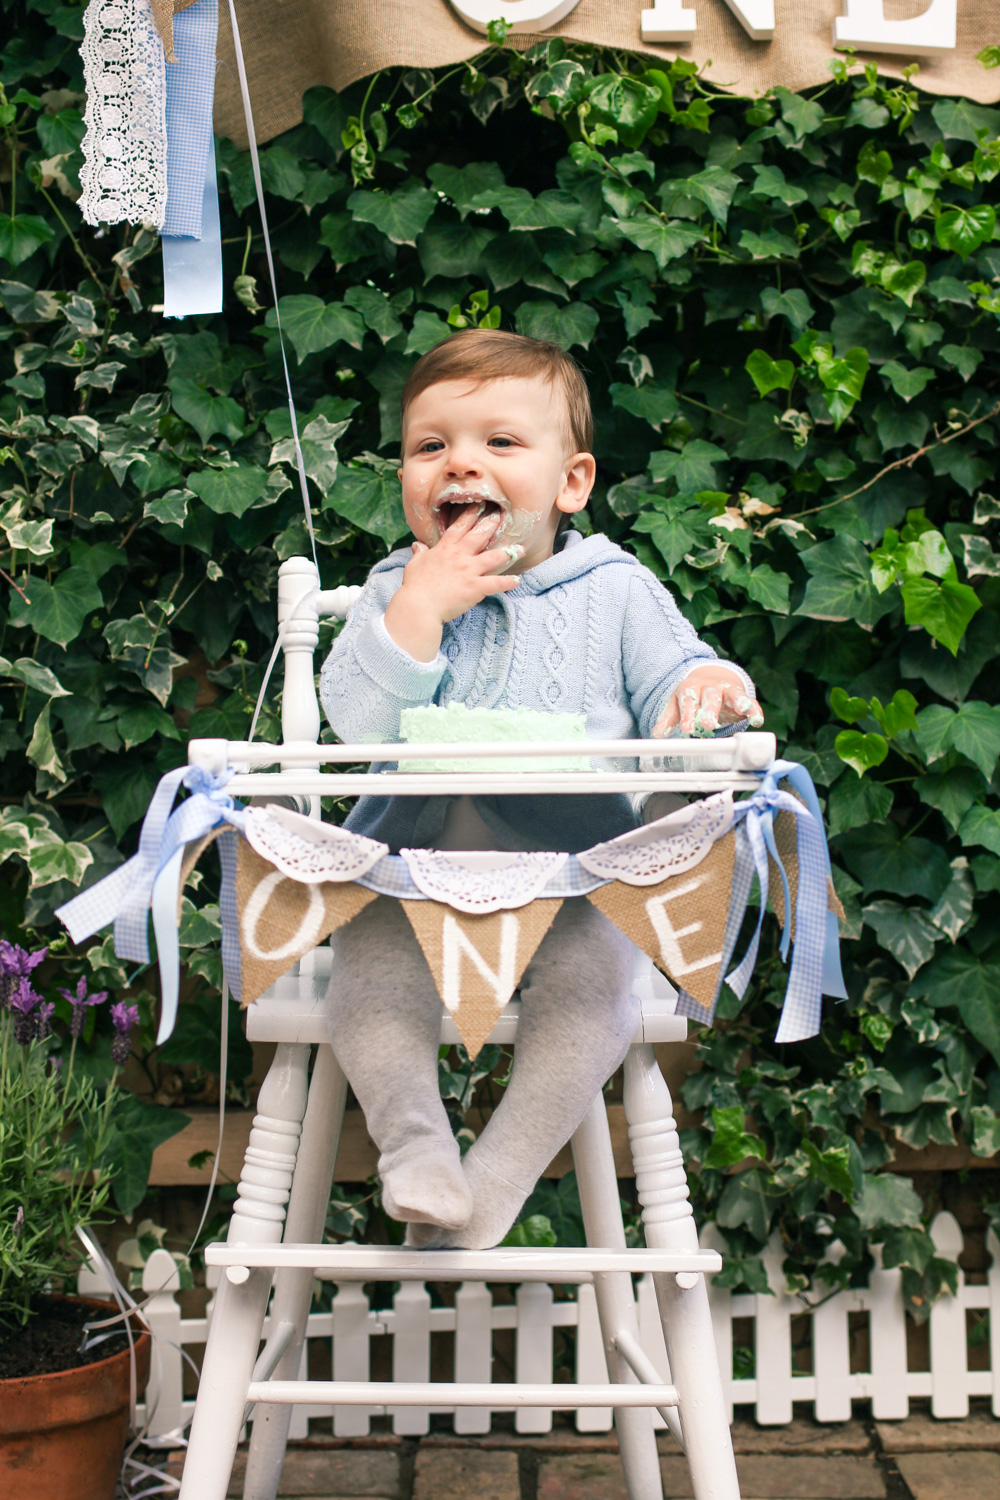 Baby cake smash in vintage baby high chair with bunting for babys Peter Rabbit themed first birthday